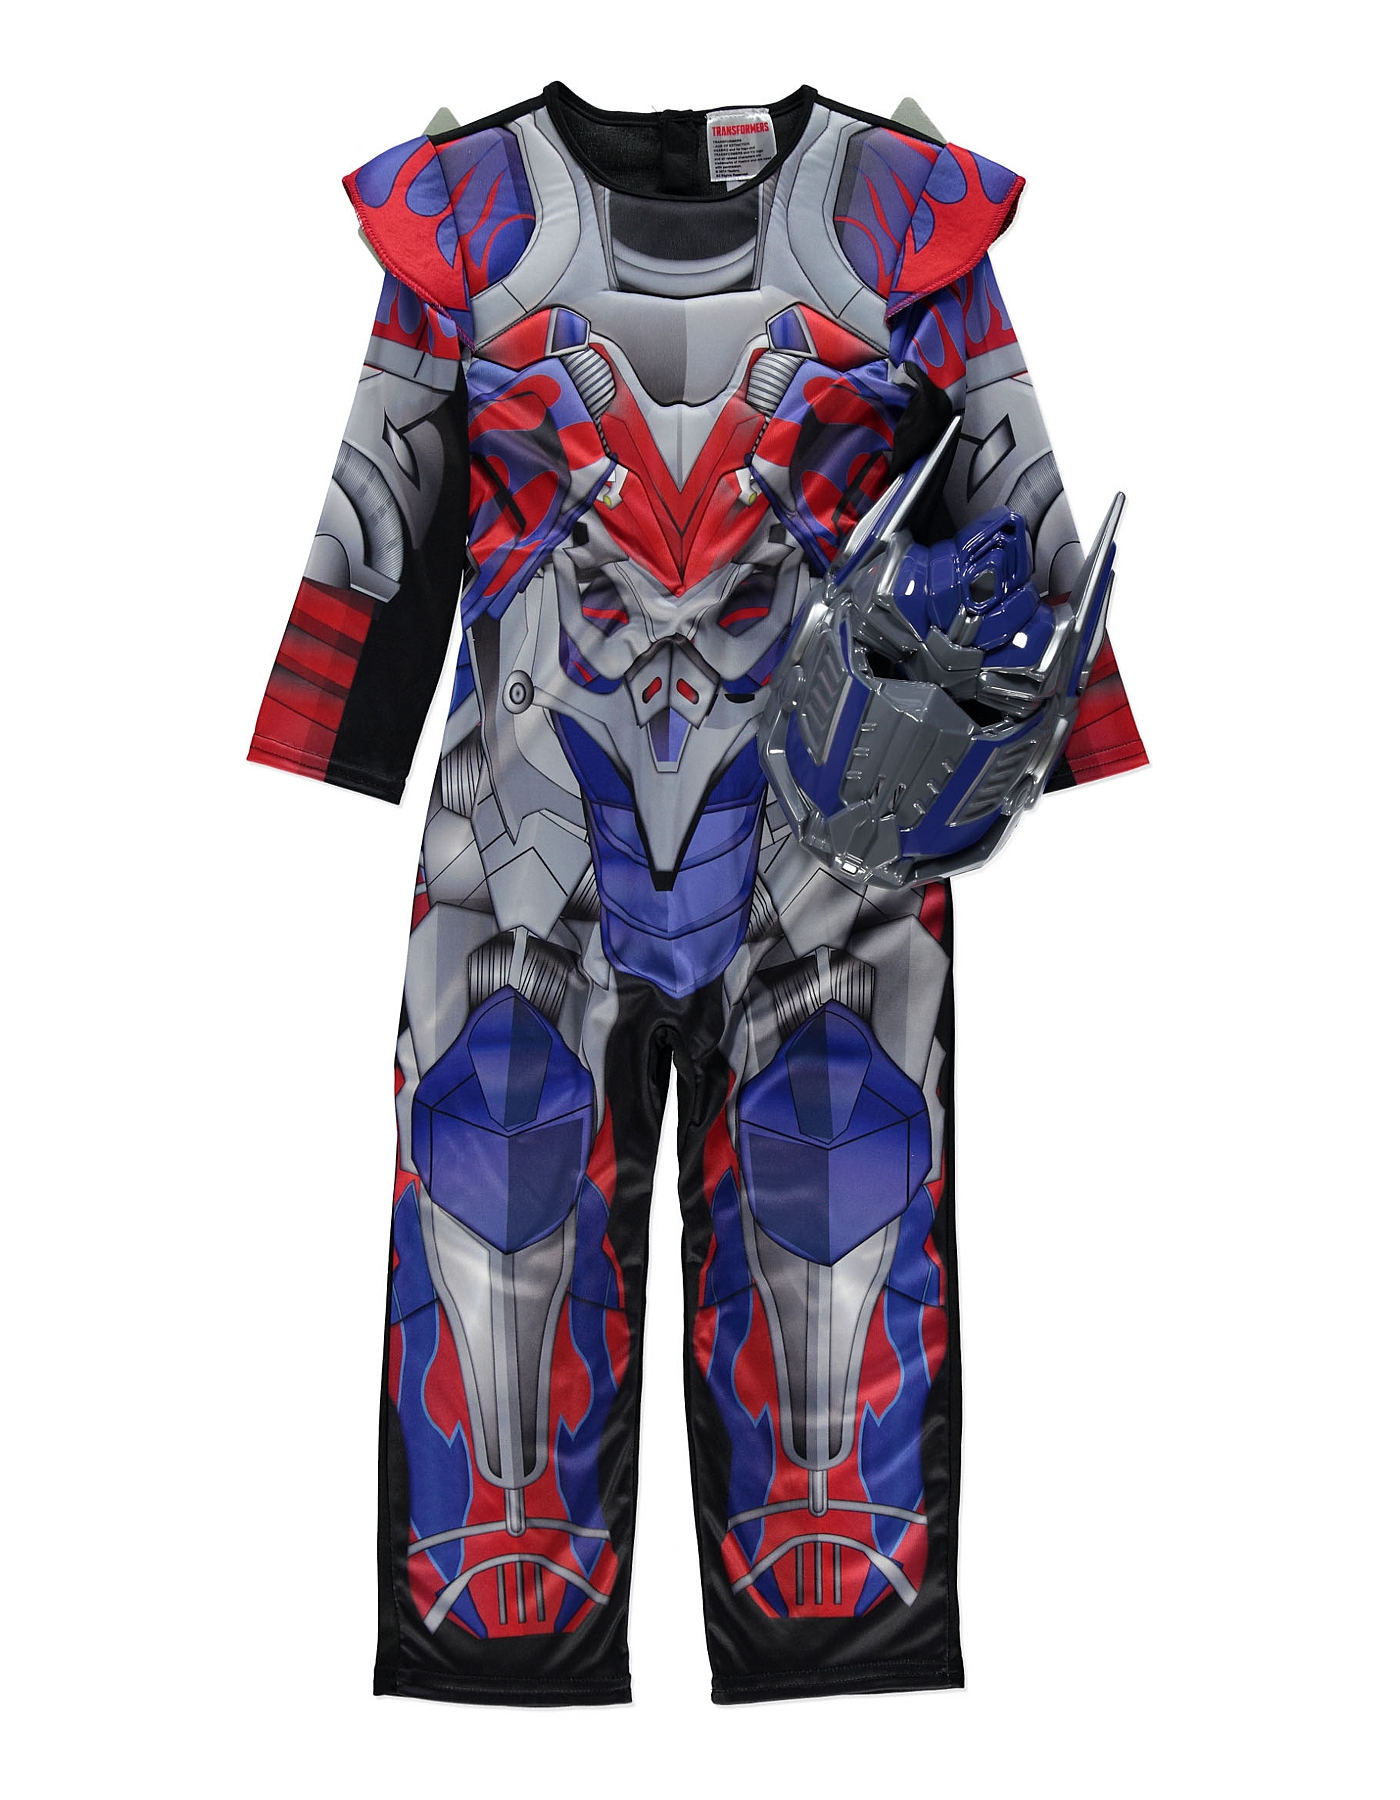 optimus prime transformer costume dress